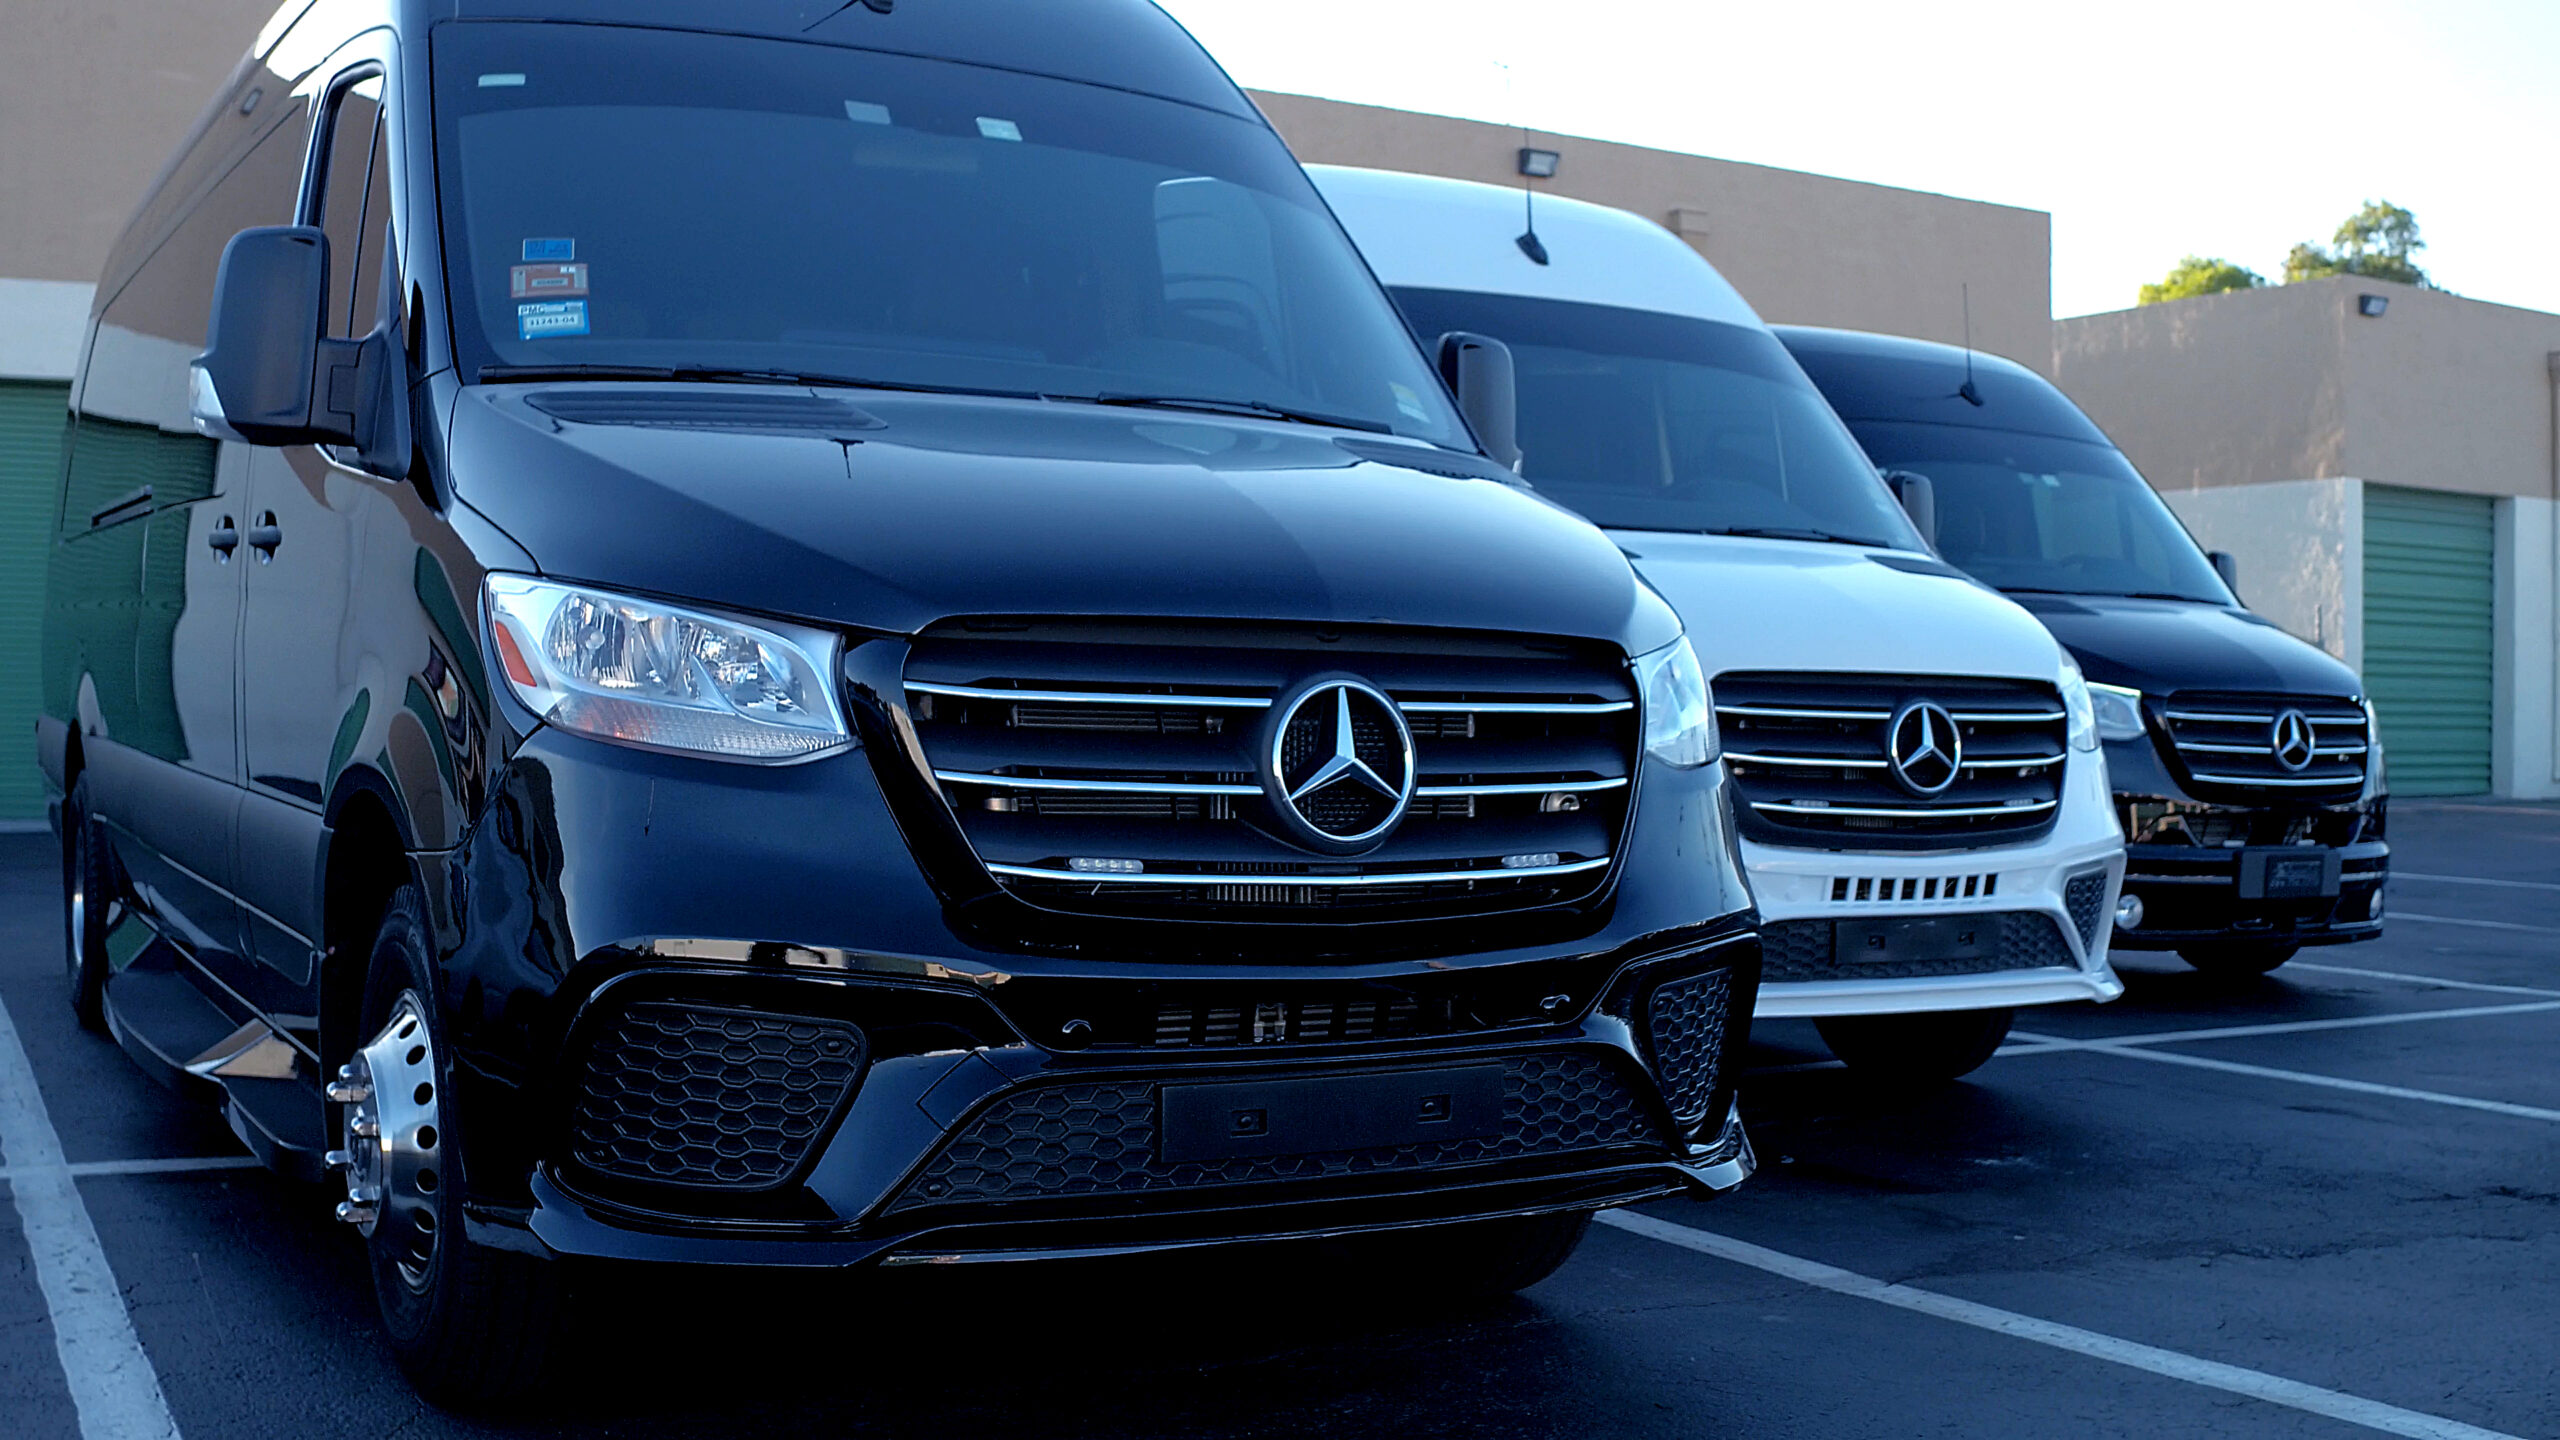 Considering the Luxury of a Mercedes Sprinter Bus